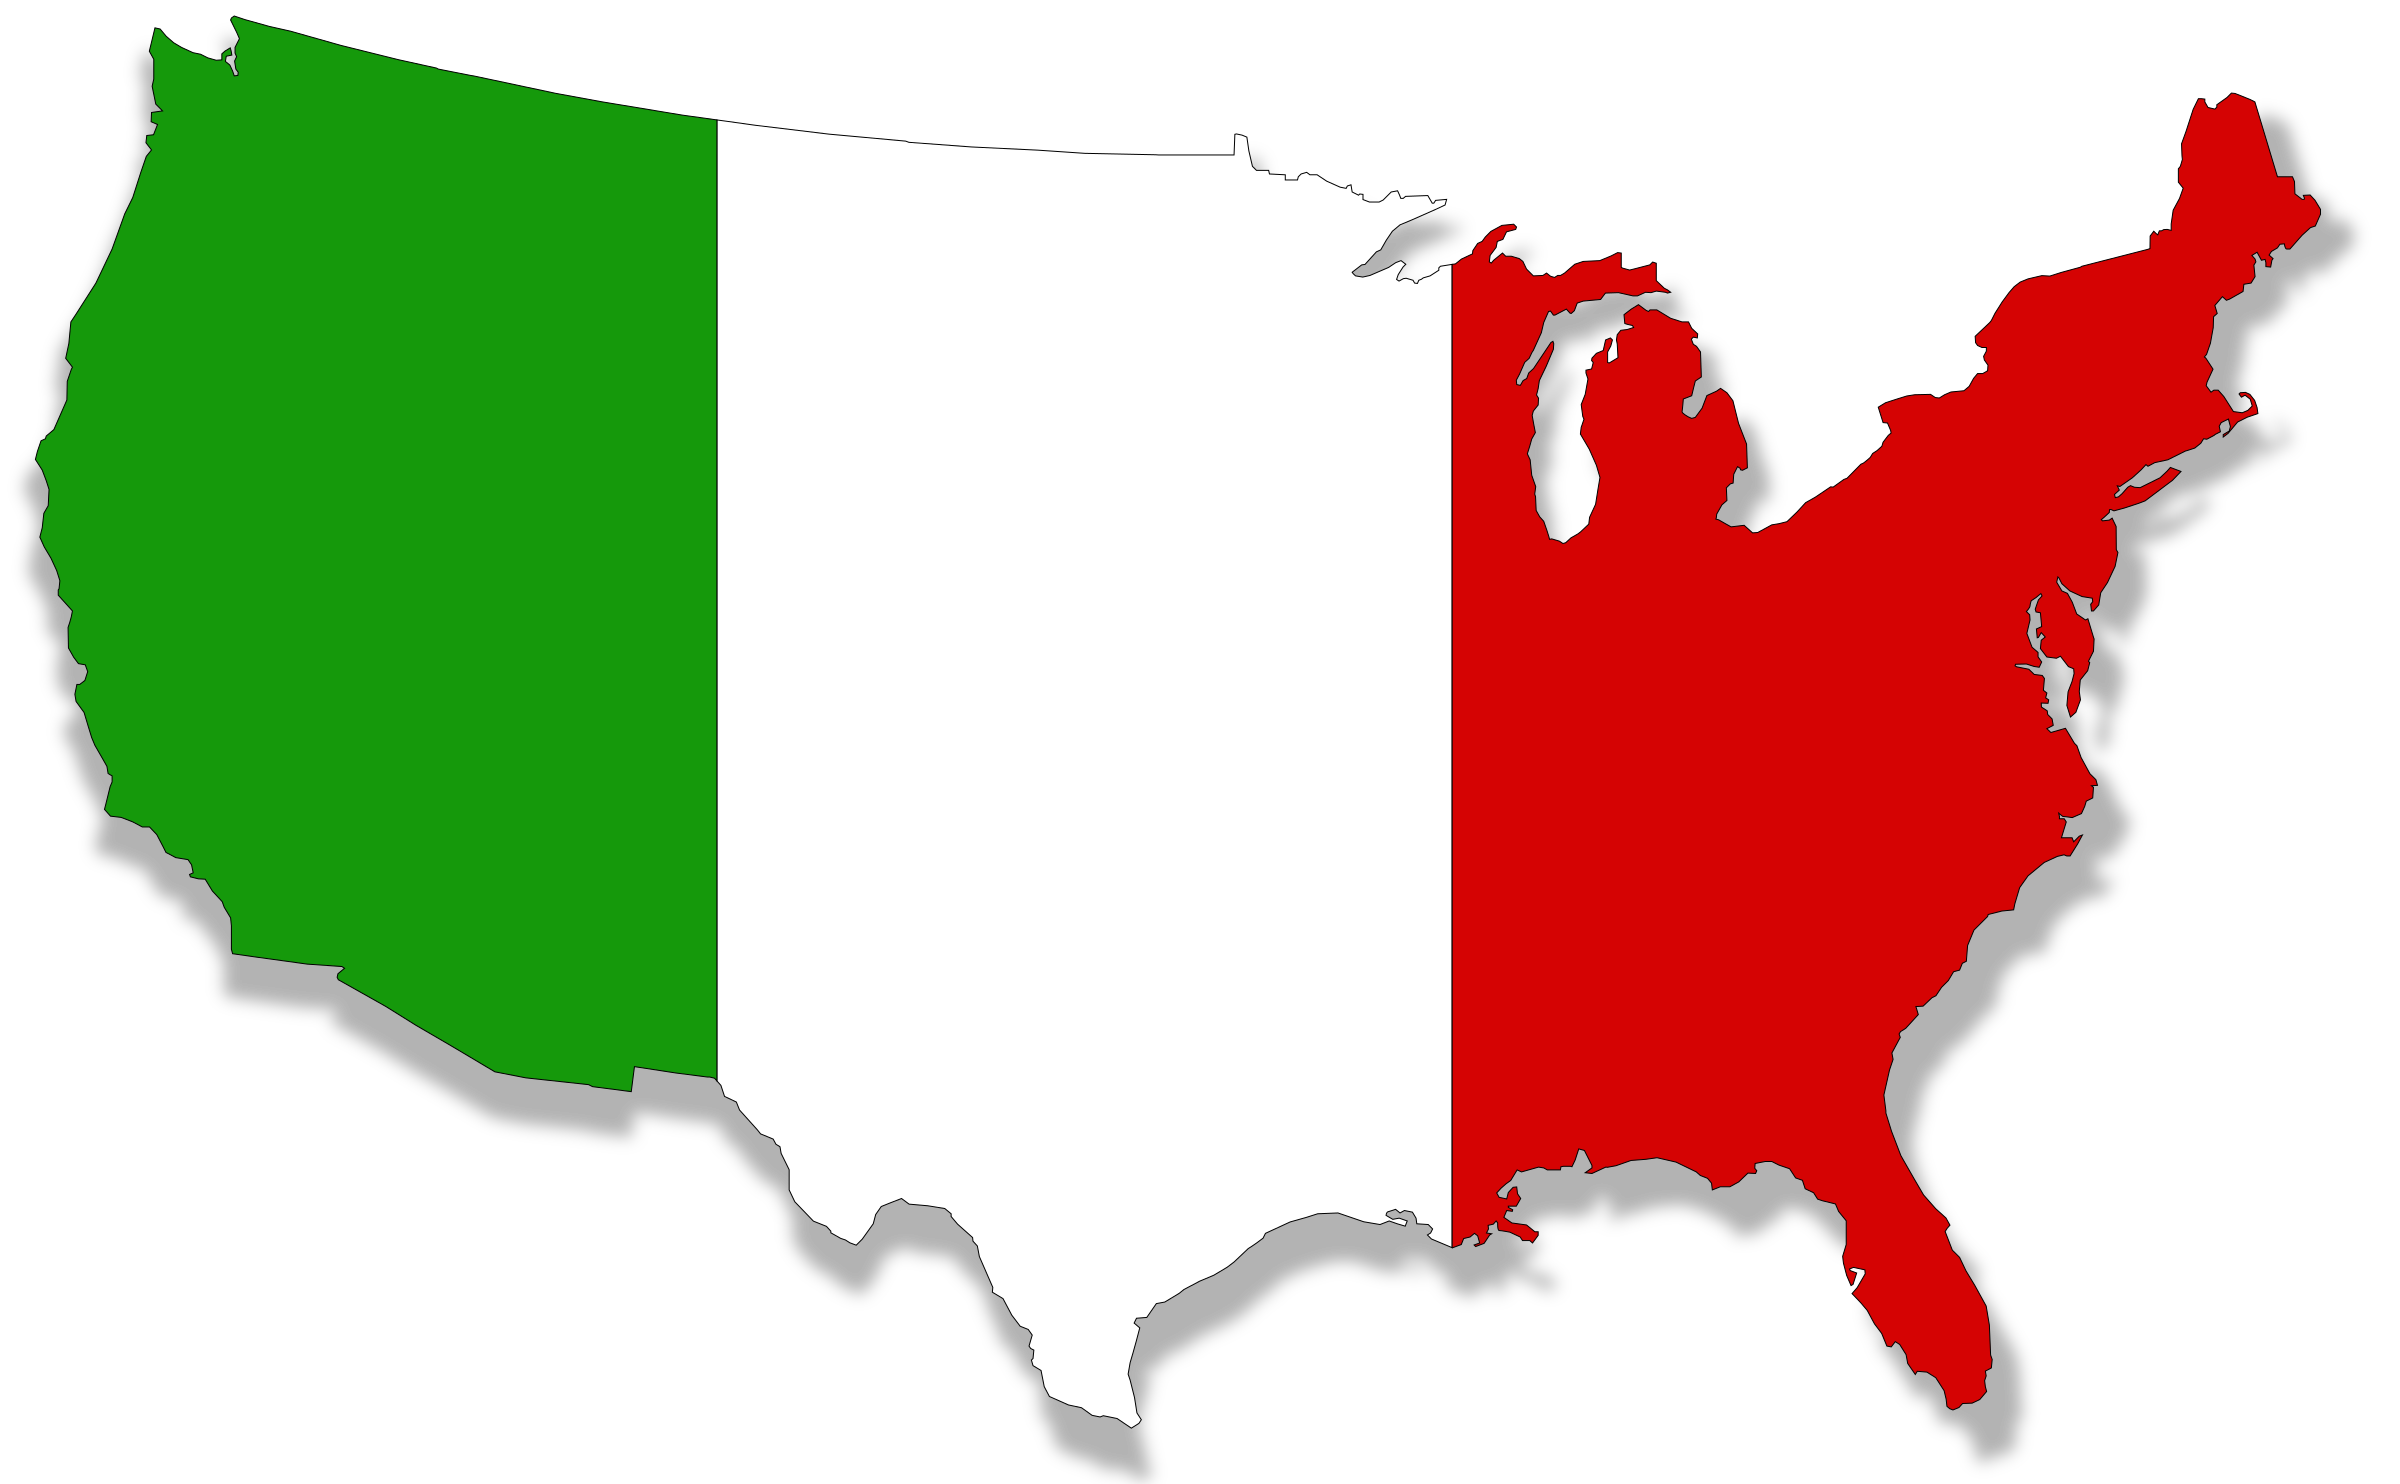 United States Silhouette Clip art - italy 2400*1484 transprent Png ... banner freeuse download